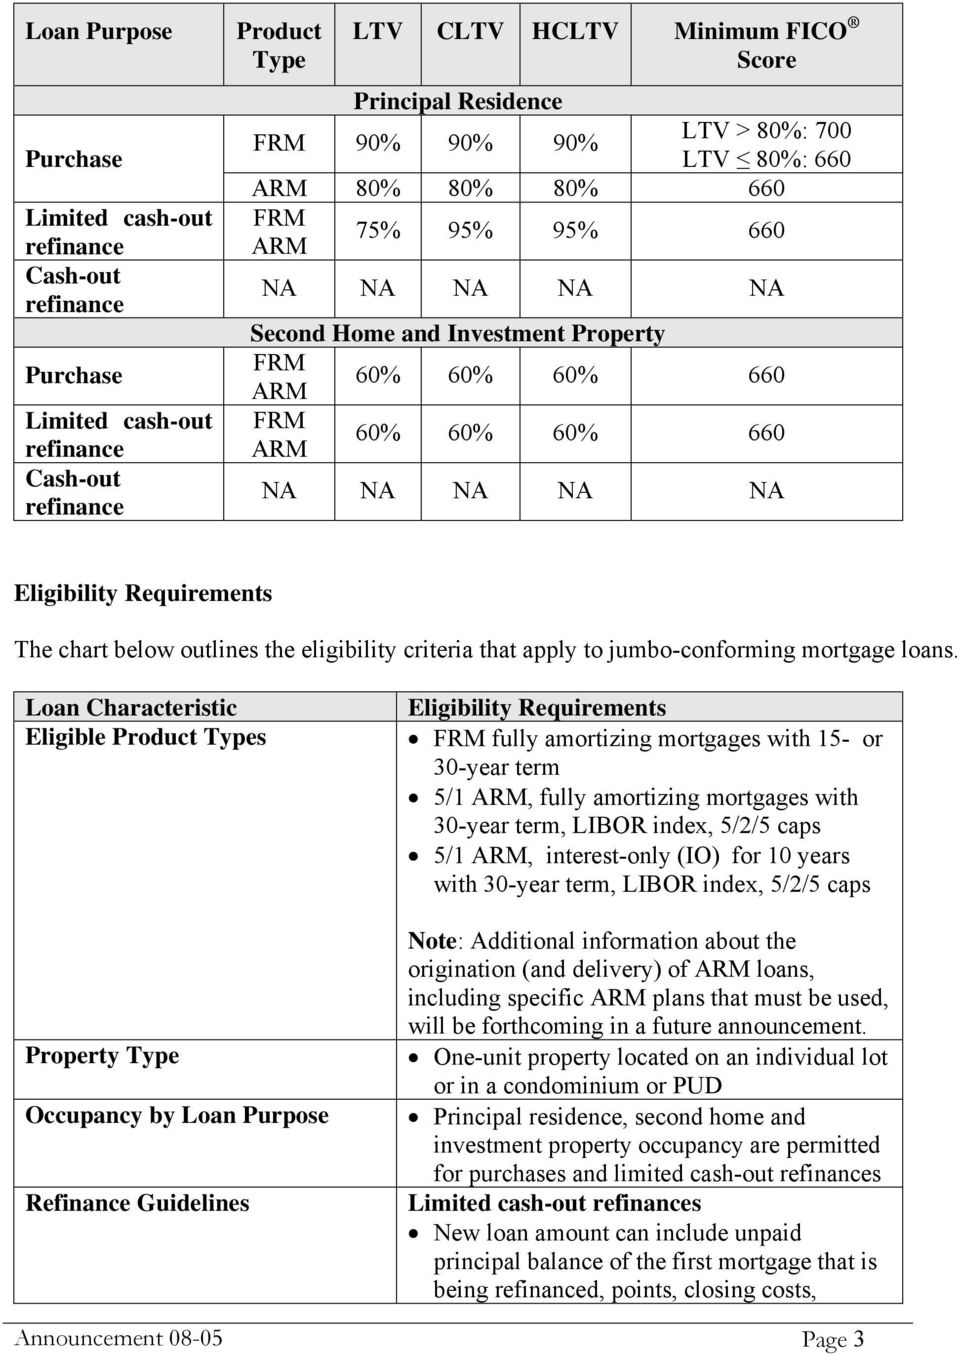 Eligibility Requirements The chart below outlines the eligibility criteria that apply to jumbo-conforming mortgage loans.